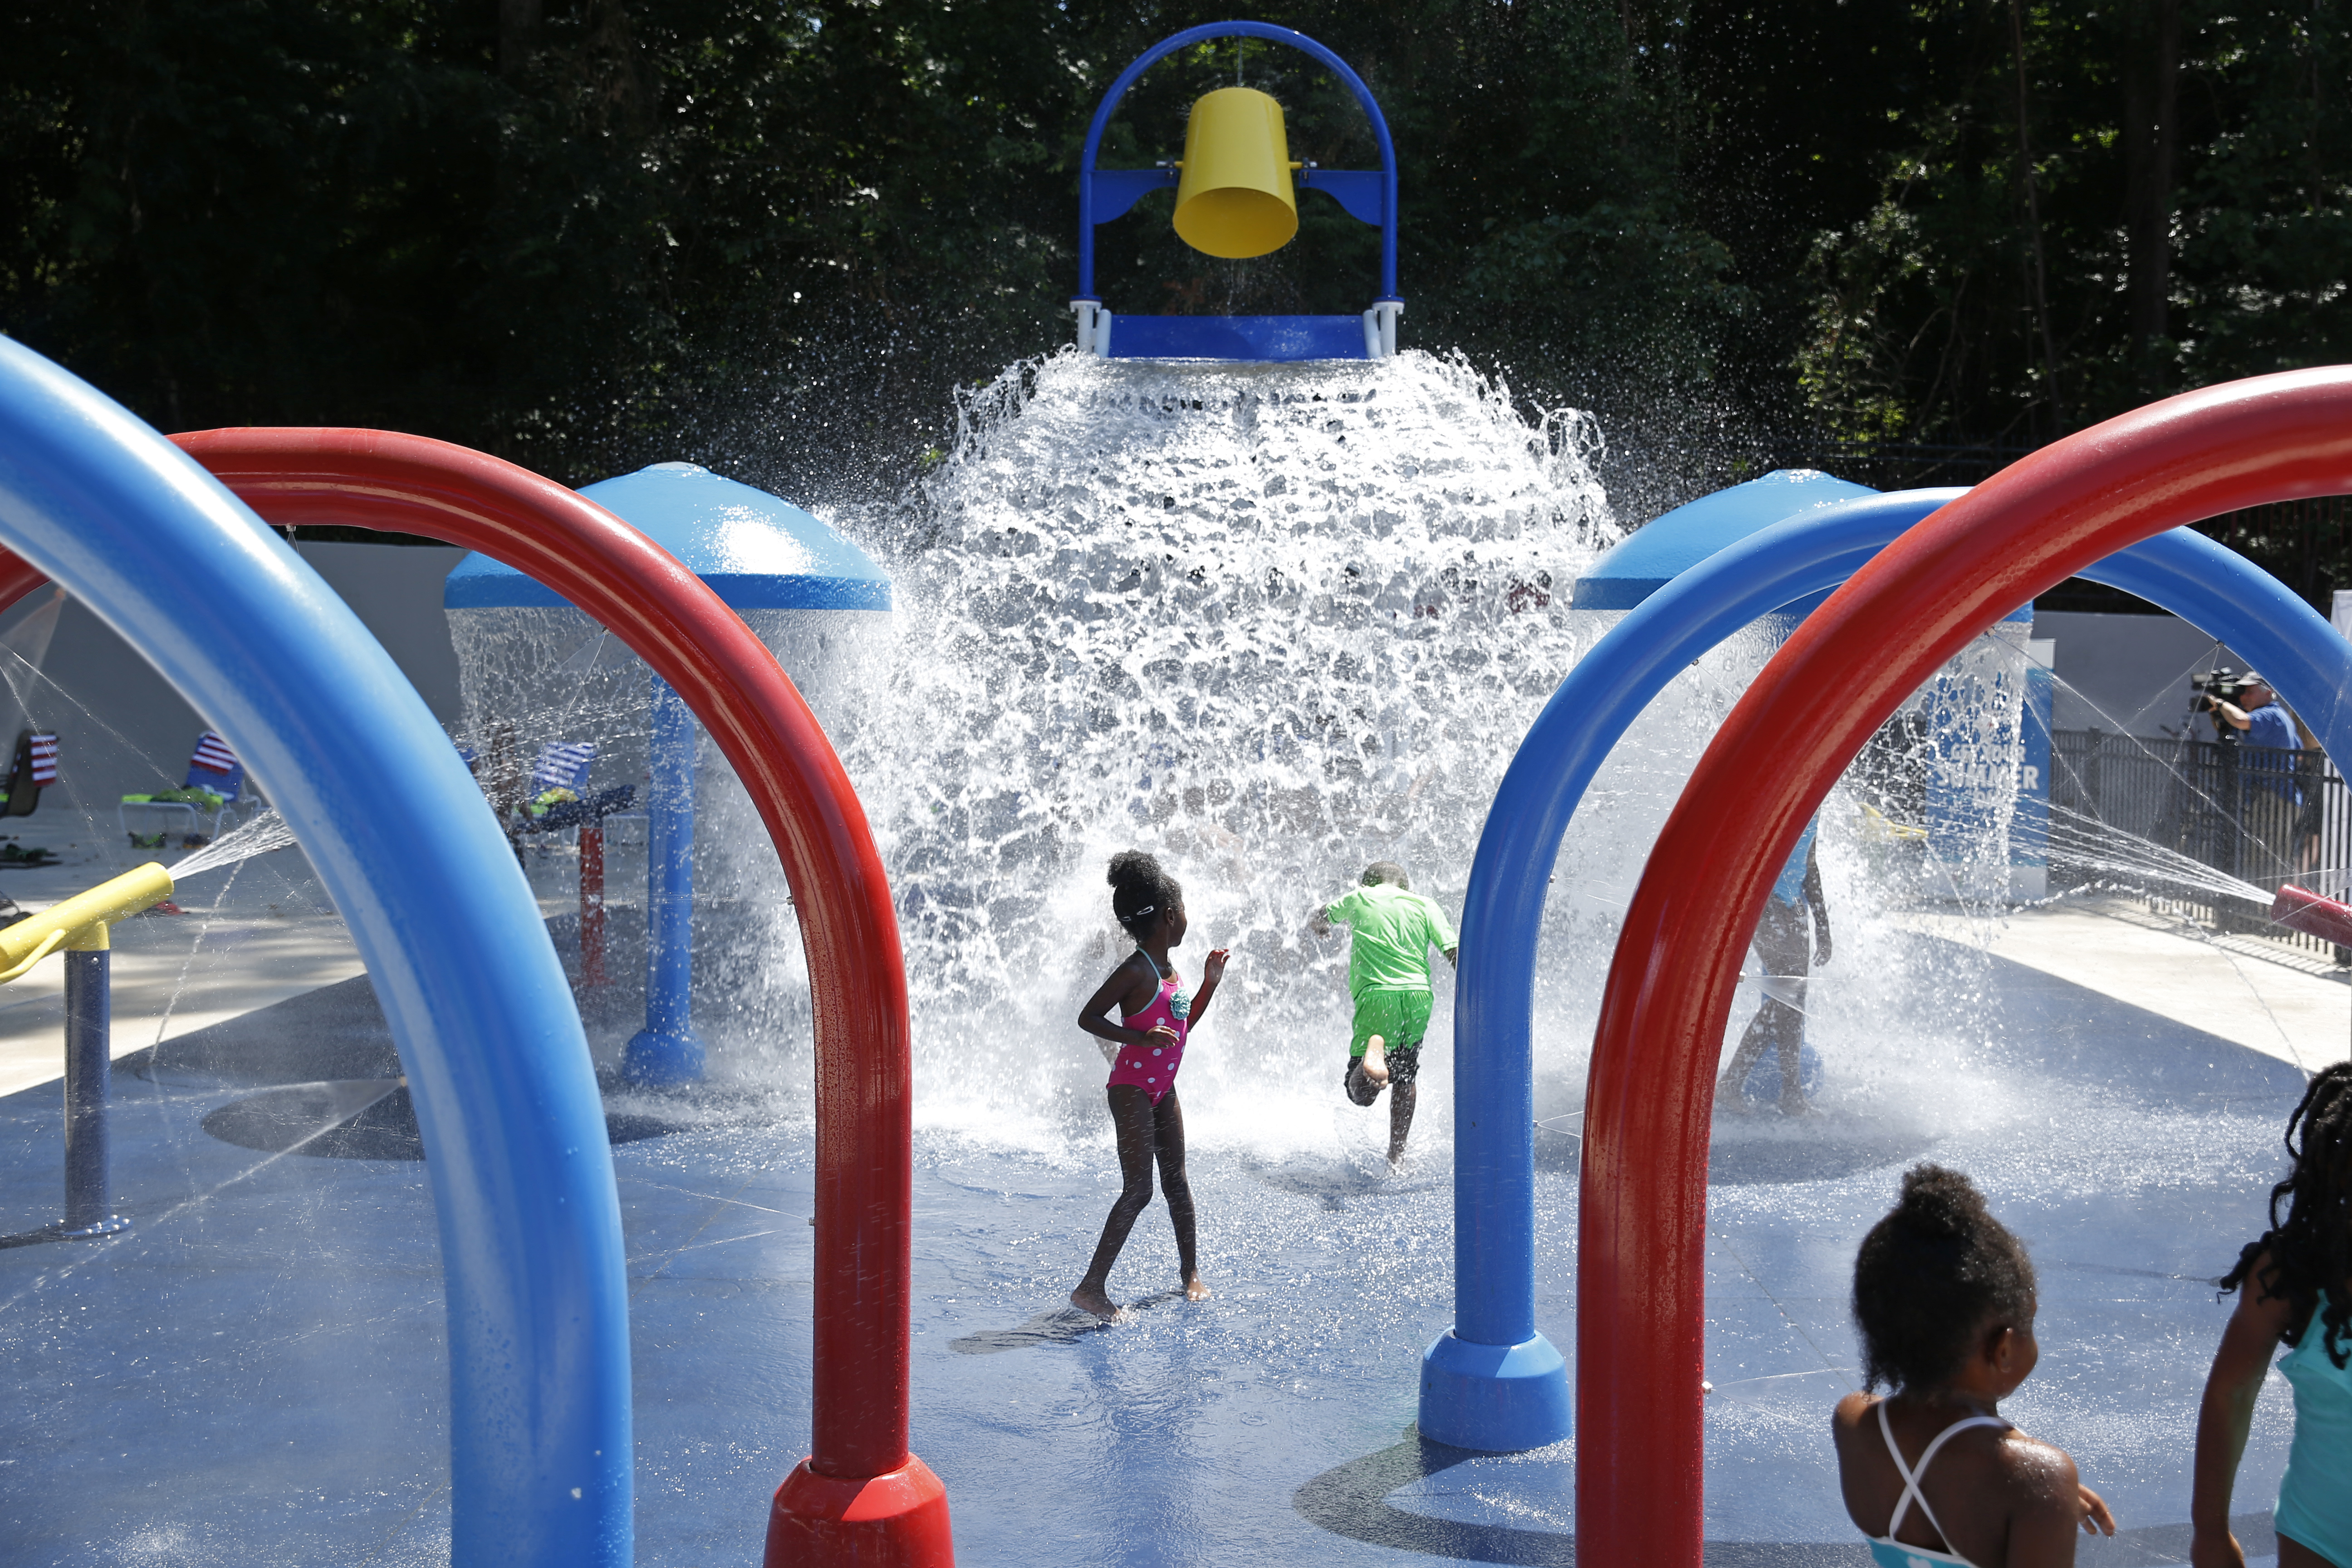 Carnival Cruise Line Celebrates Opening of Splash Island at Atlanta's Adams Park With Fun-Filled Event for Local Community